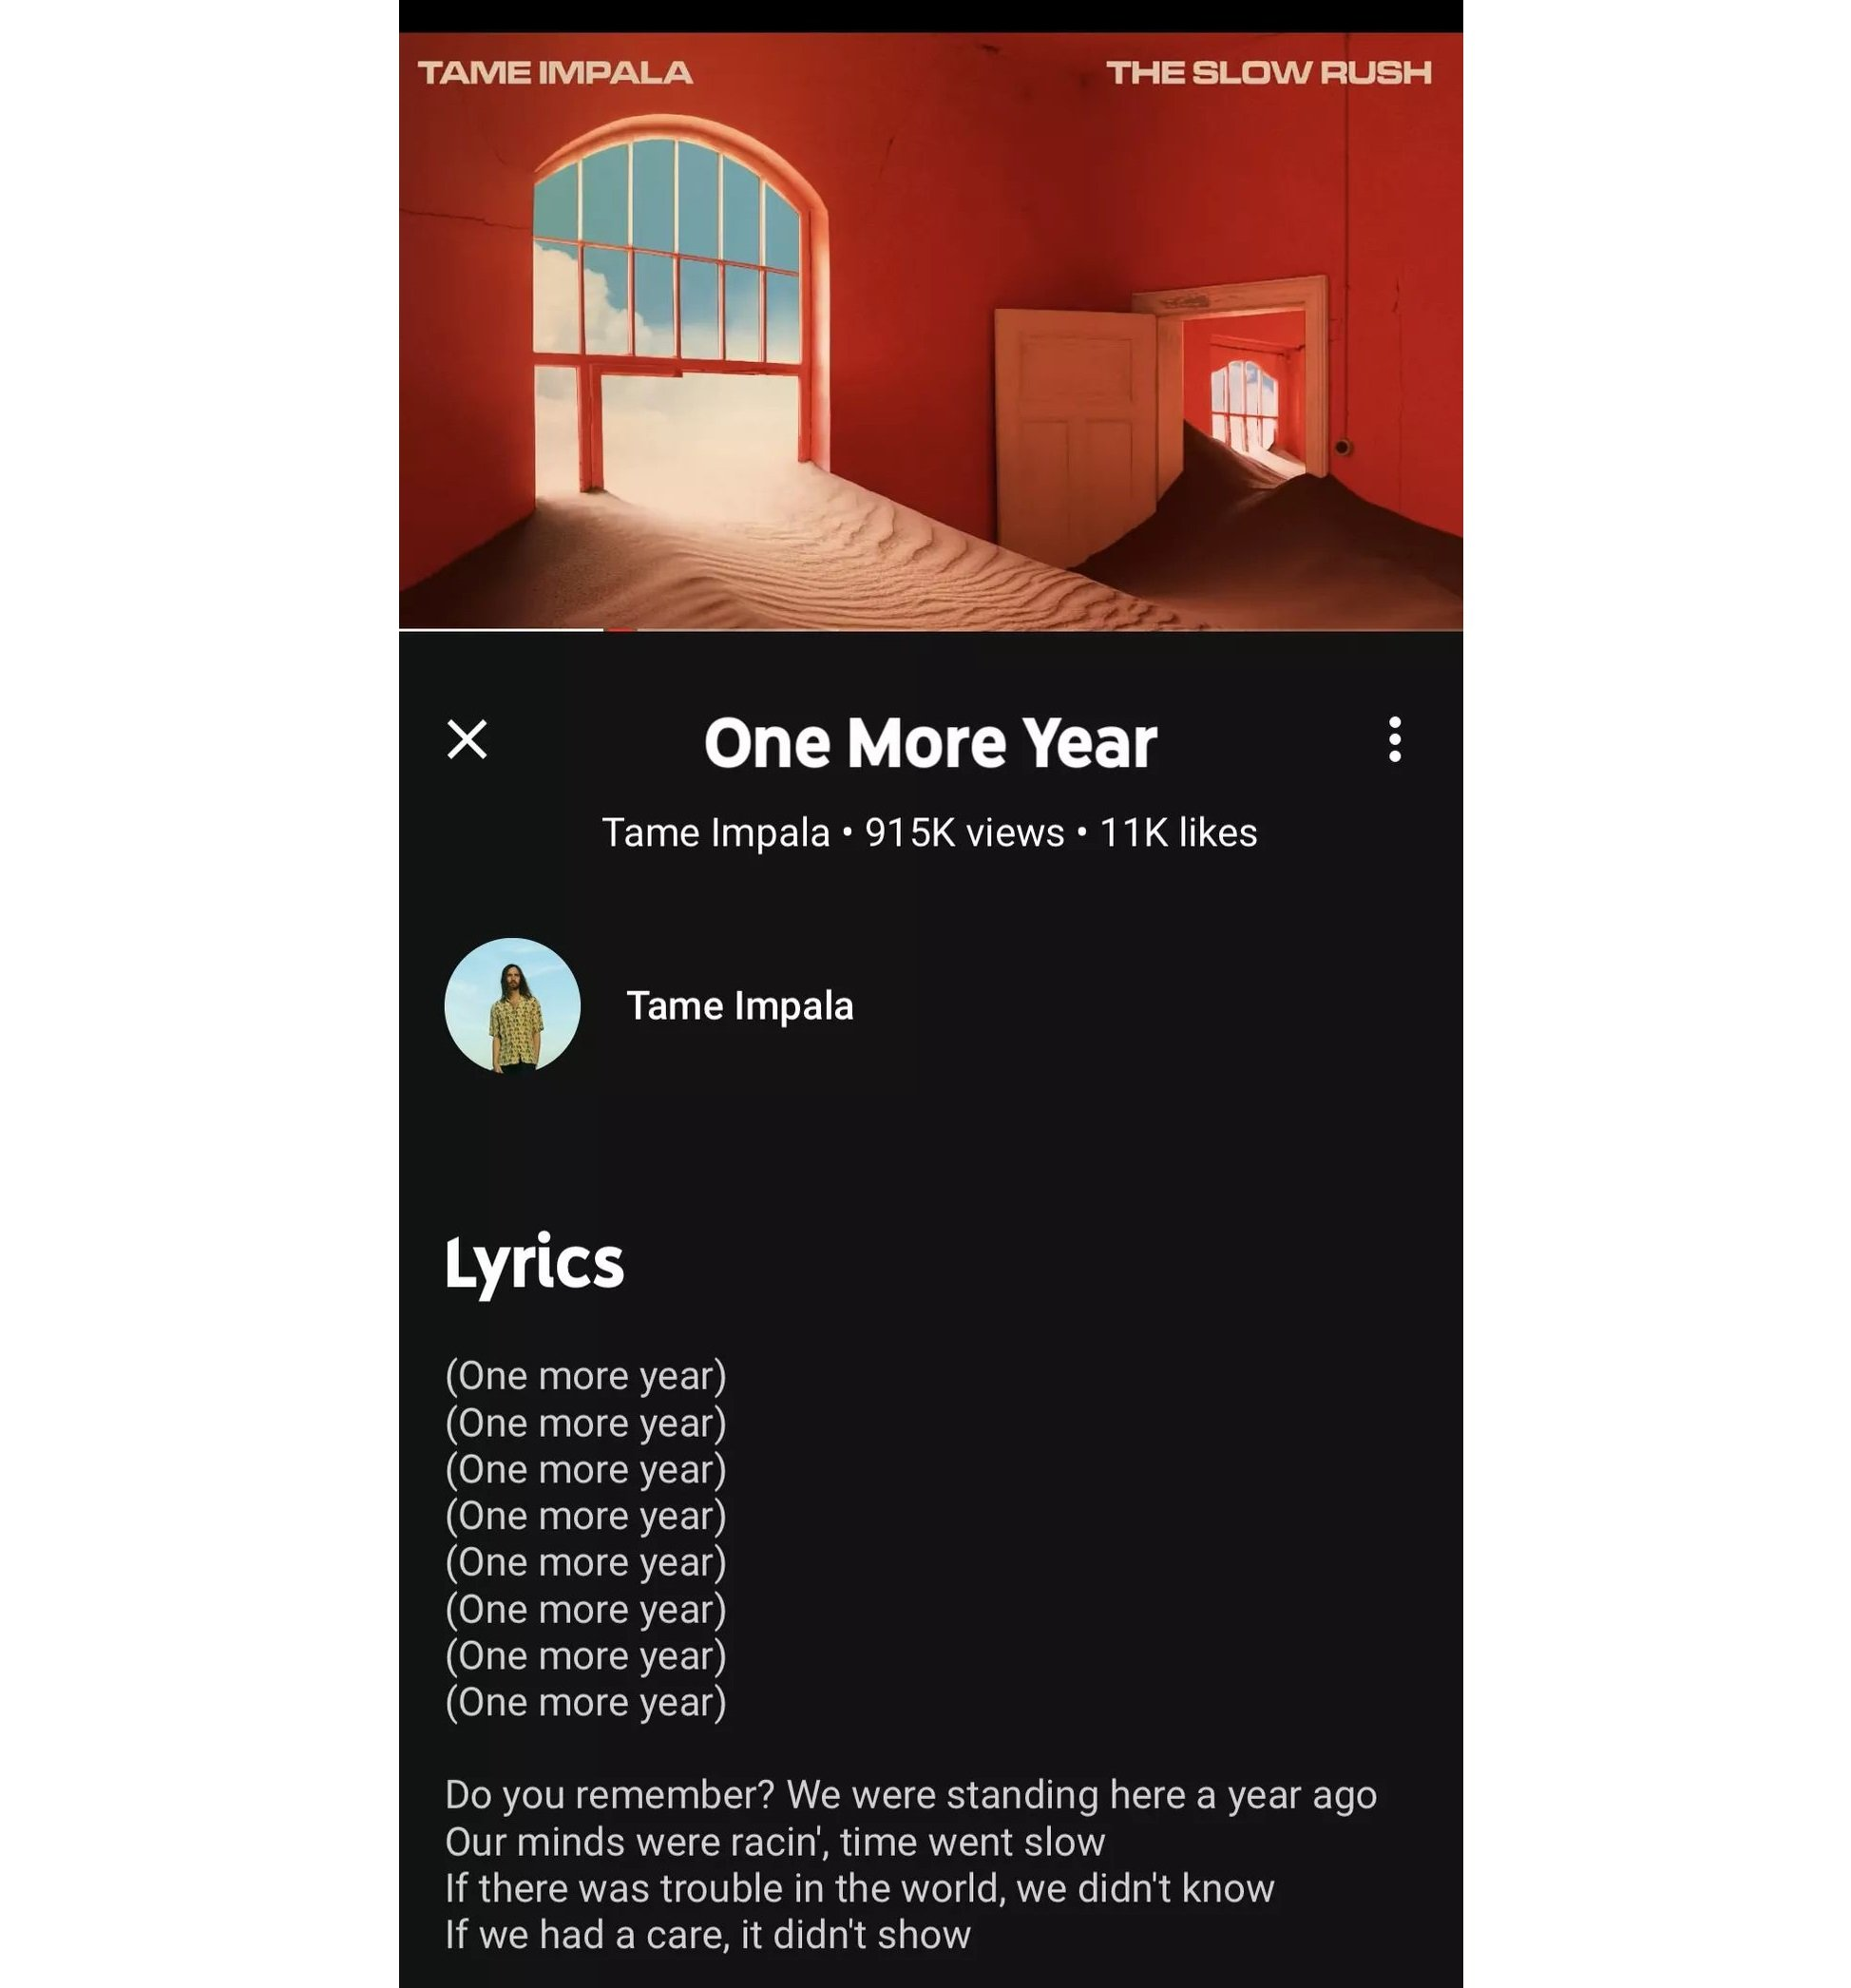 youtube music songtext